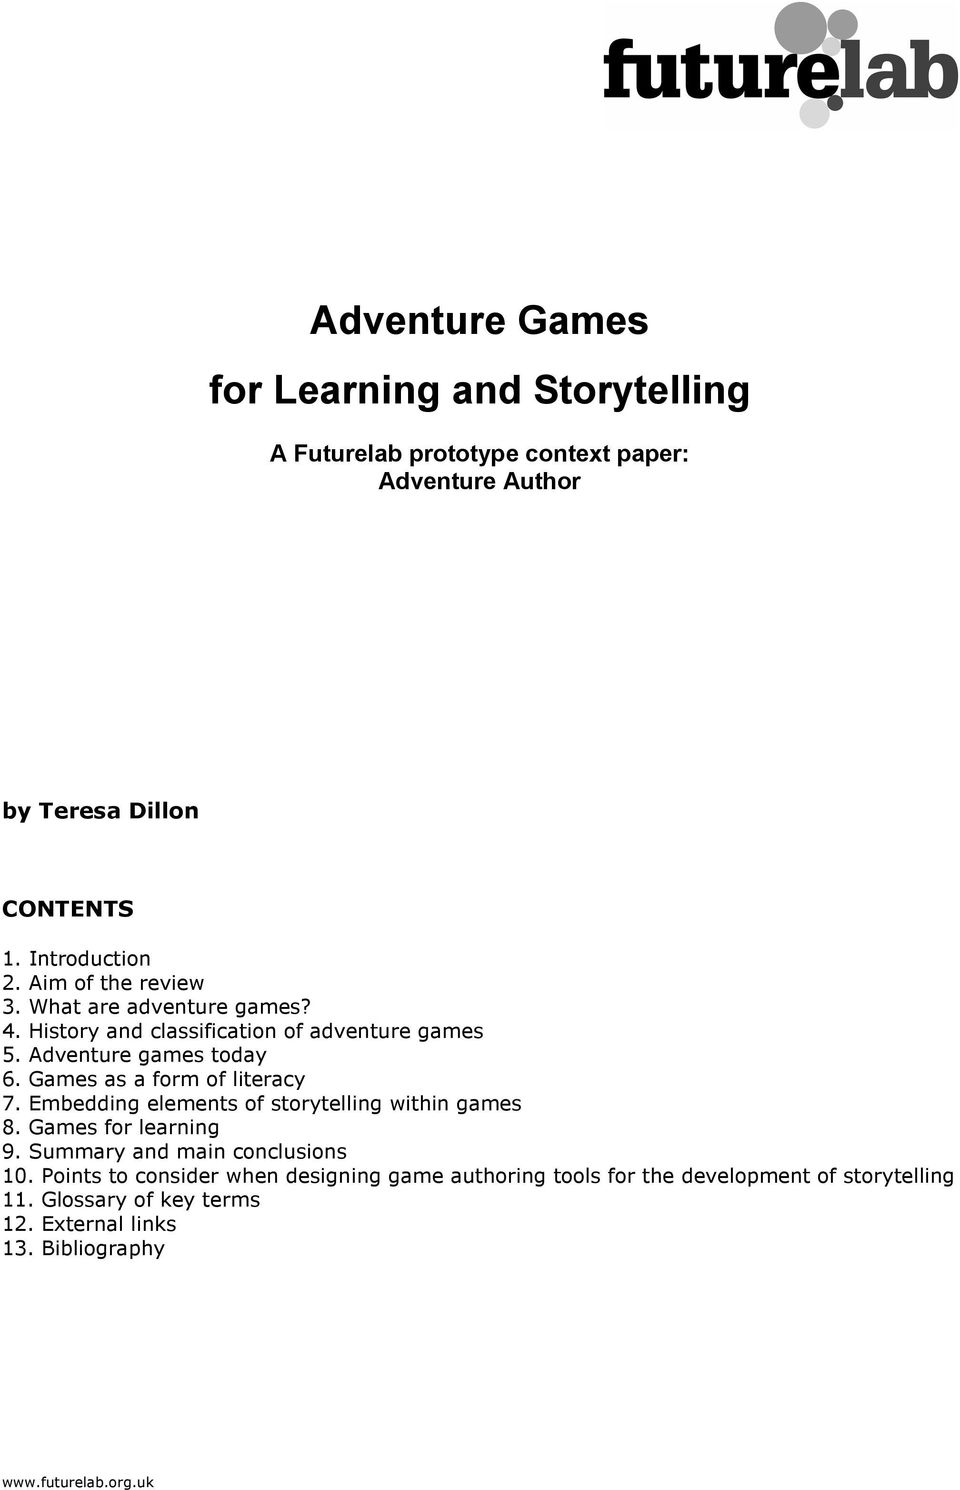 Games as a frm f literacy 7. Embedding elements f strytelling within games 8. Games fr learning 9. Summary and main cnclusins 10.